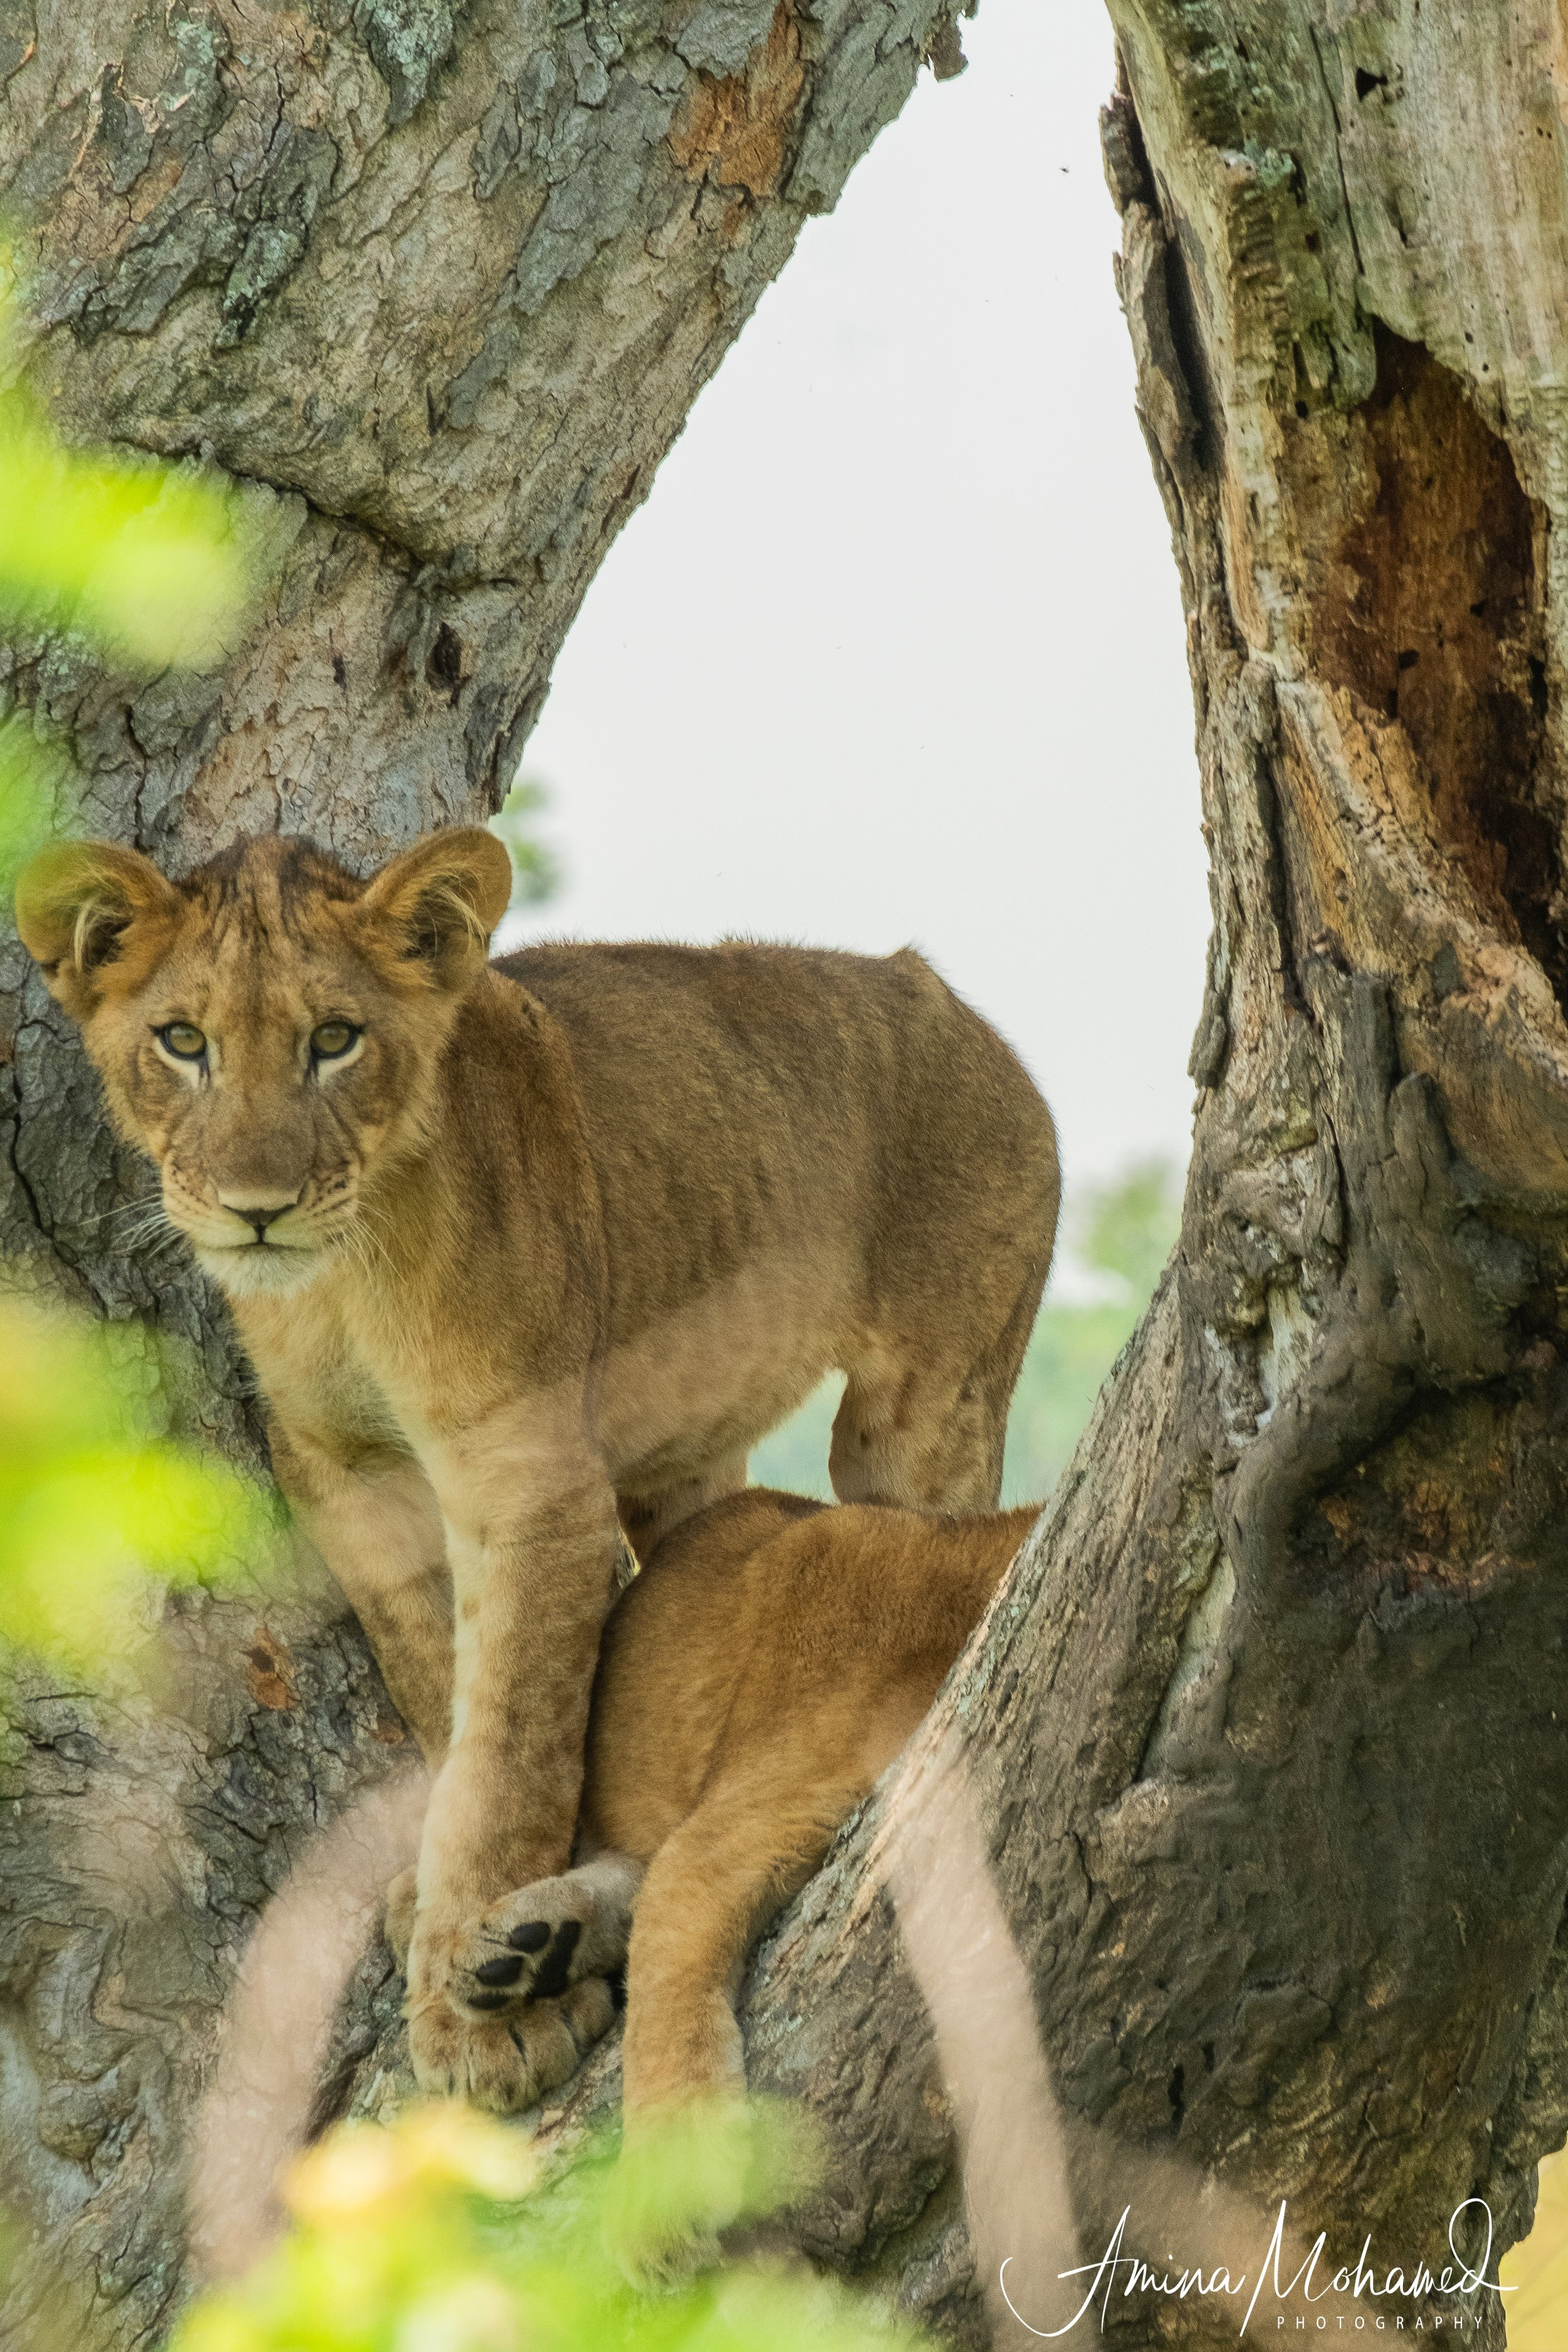 Tree-climbing lions in Queen Elizabeth National Park, Uganda - copyright @ Triple F Photo Tours